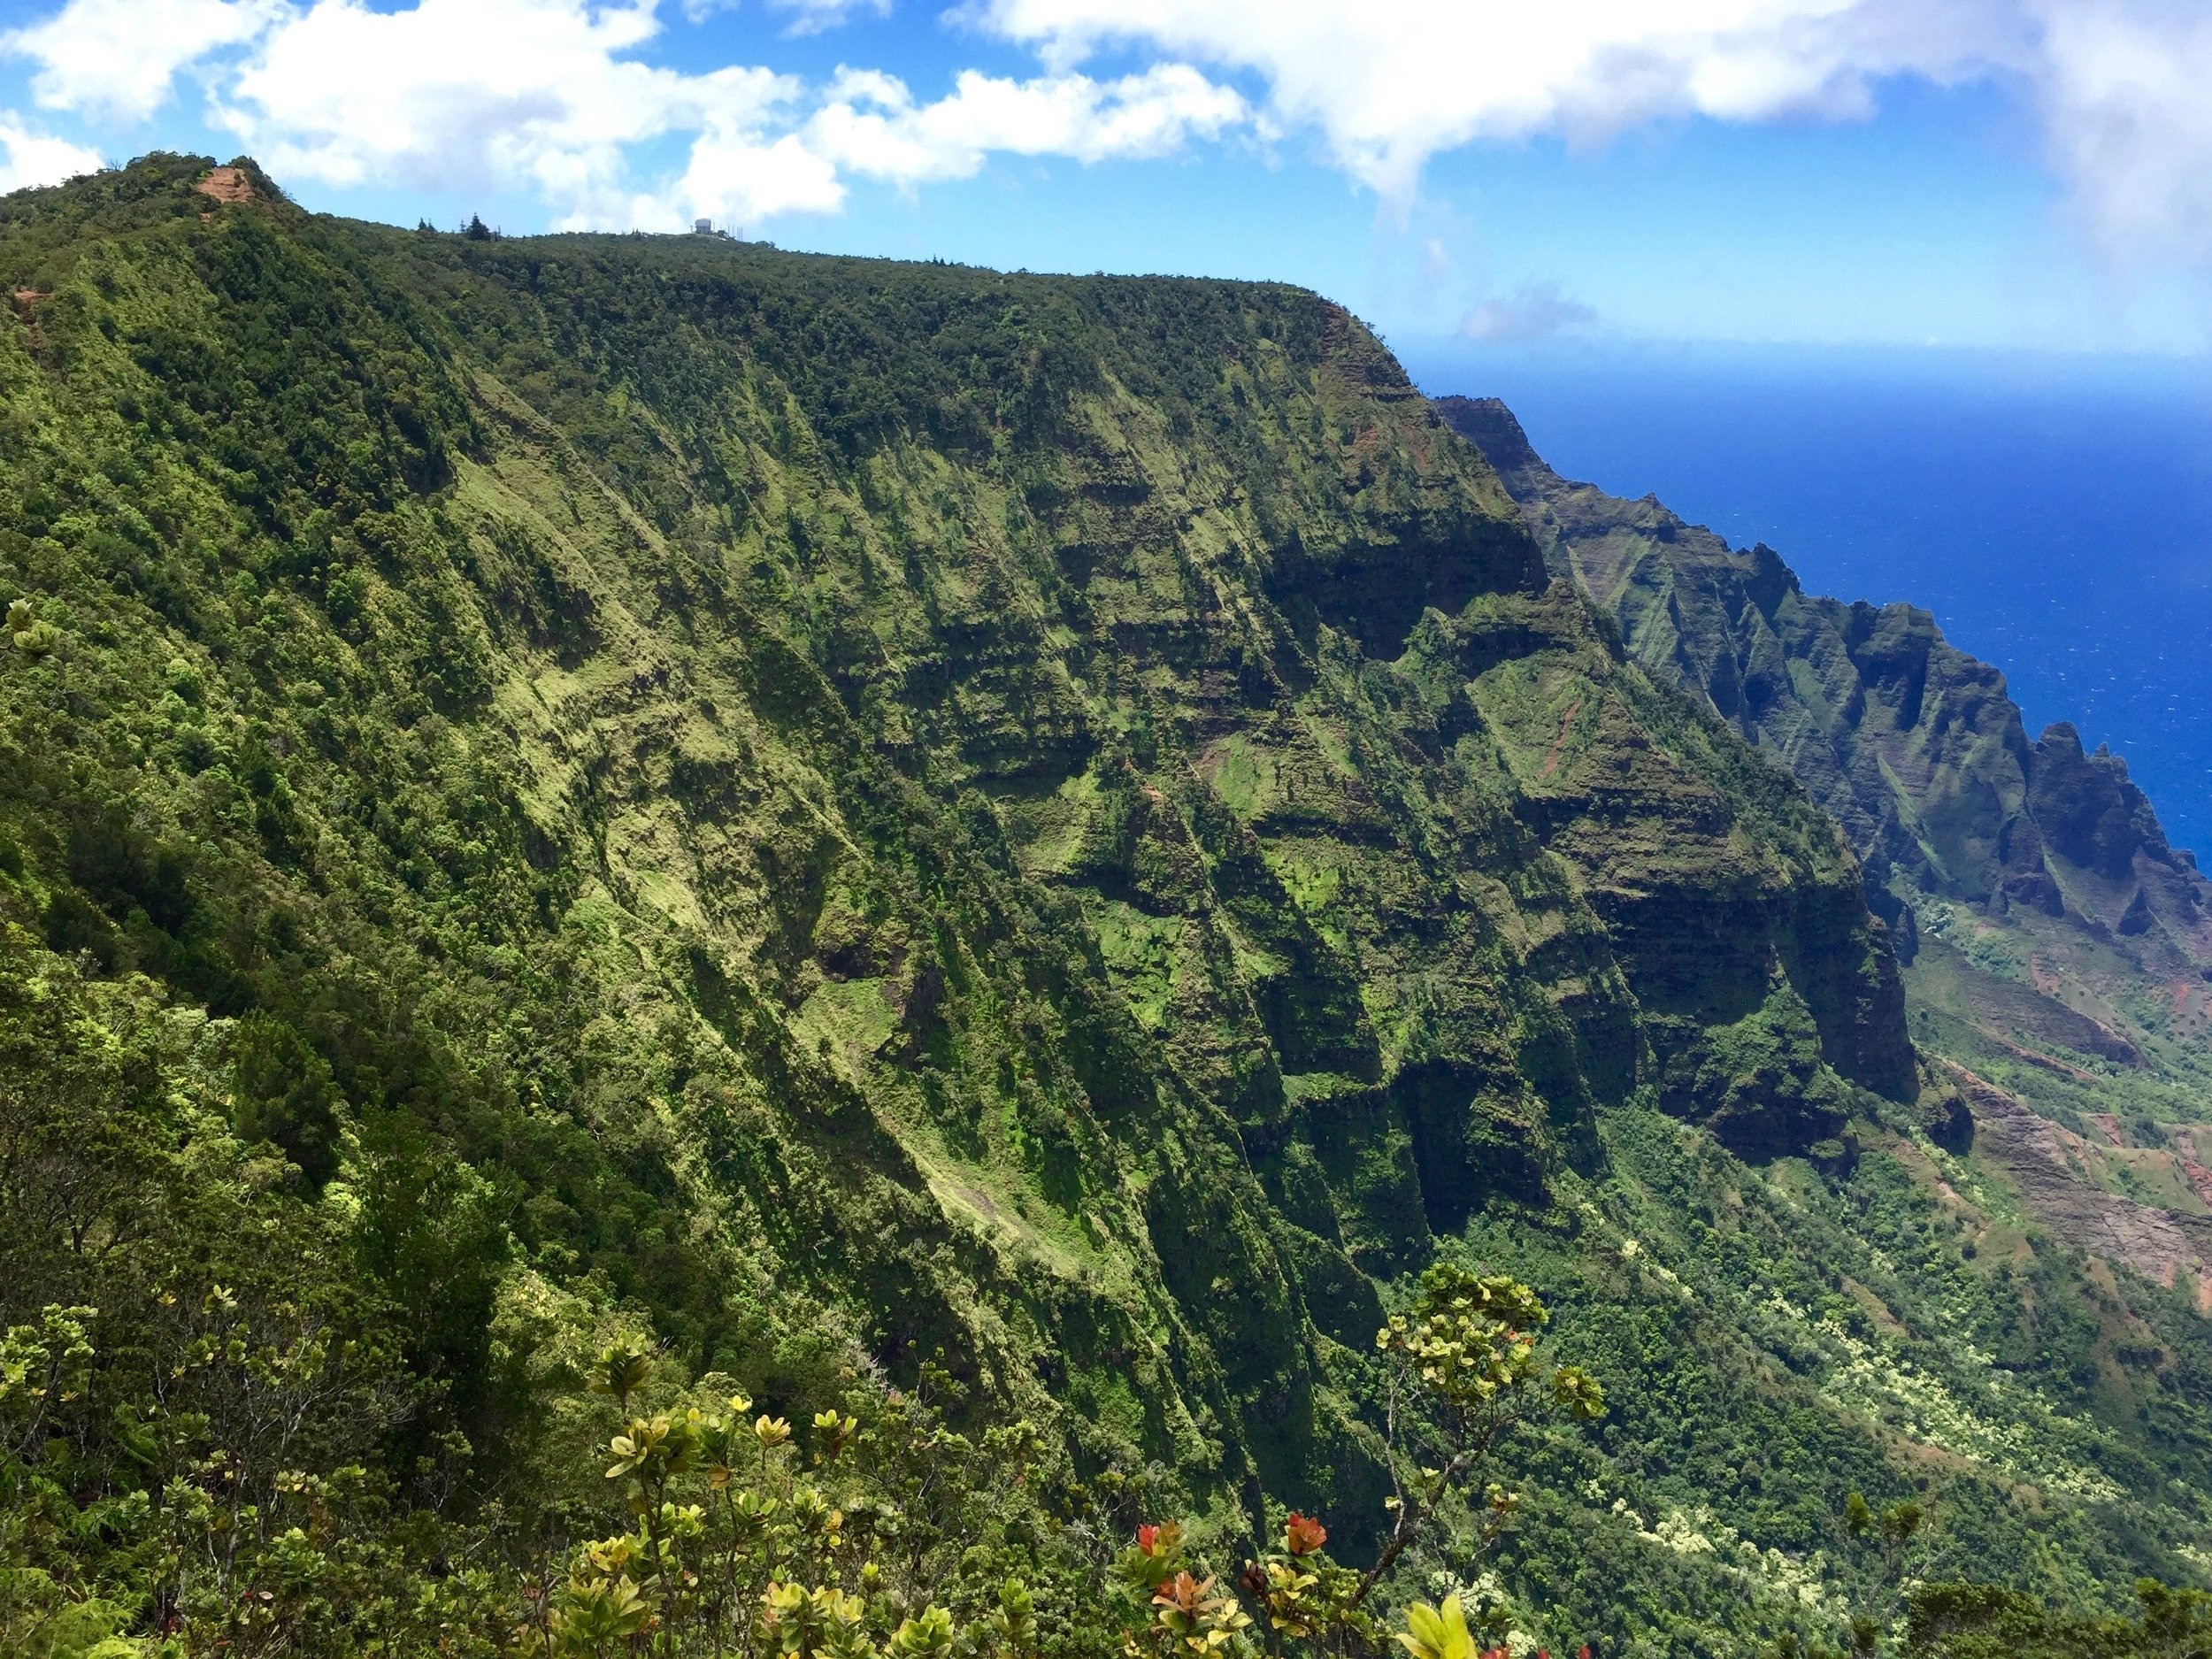 Better views of the Kalalau Valley at the end of the hike once the clouds cleared.